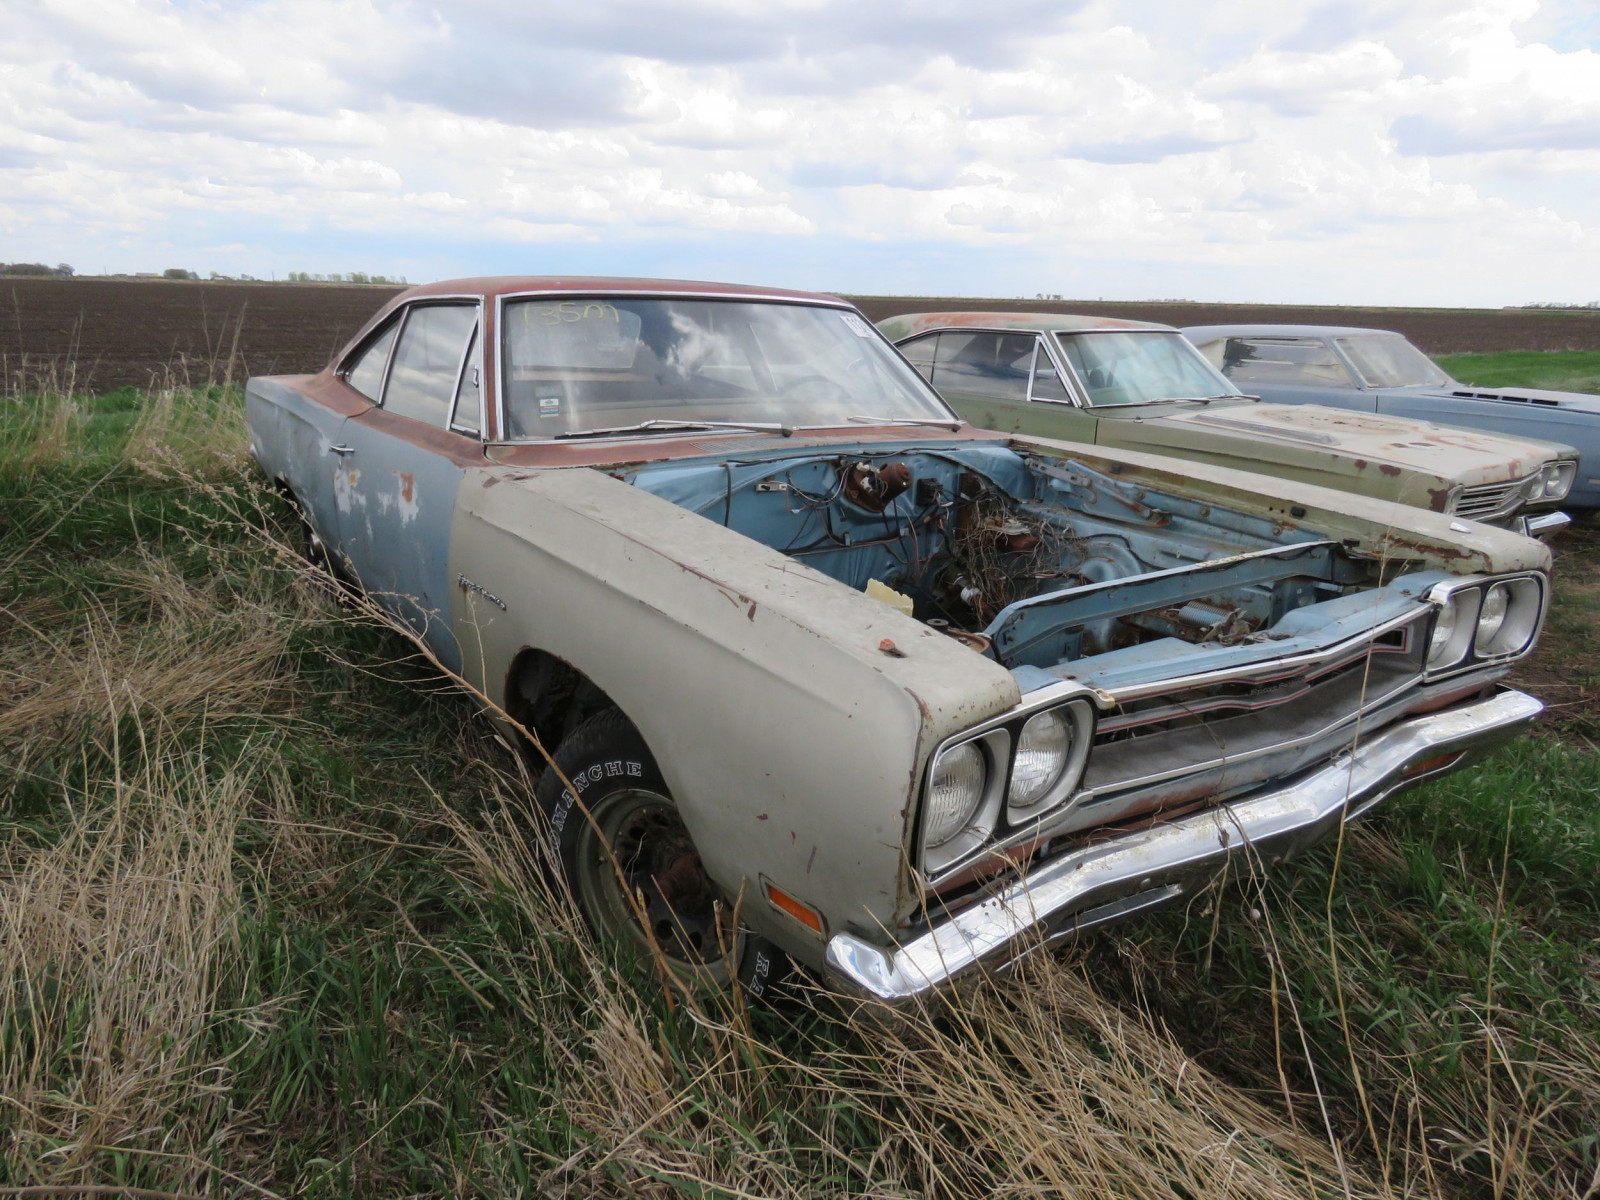 1969 Plymouth Satellite Coupe - Image 3